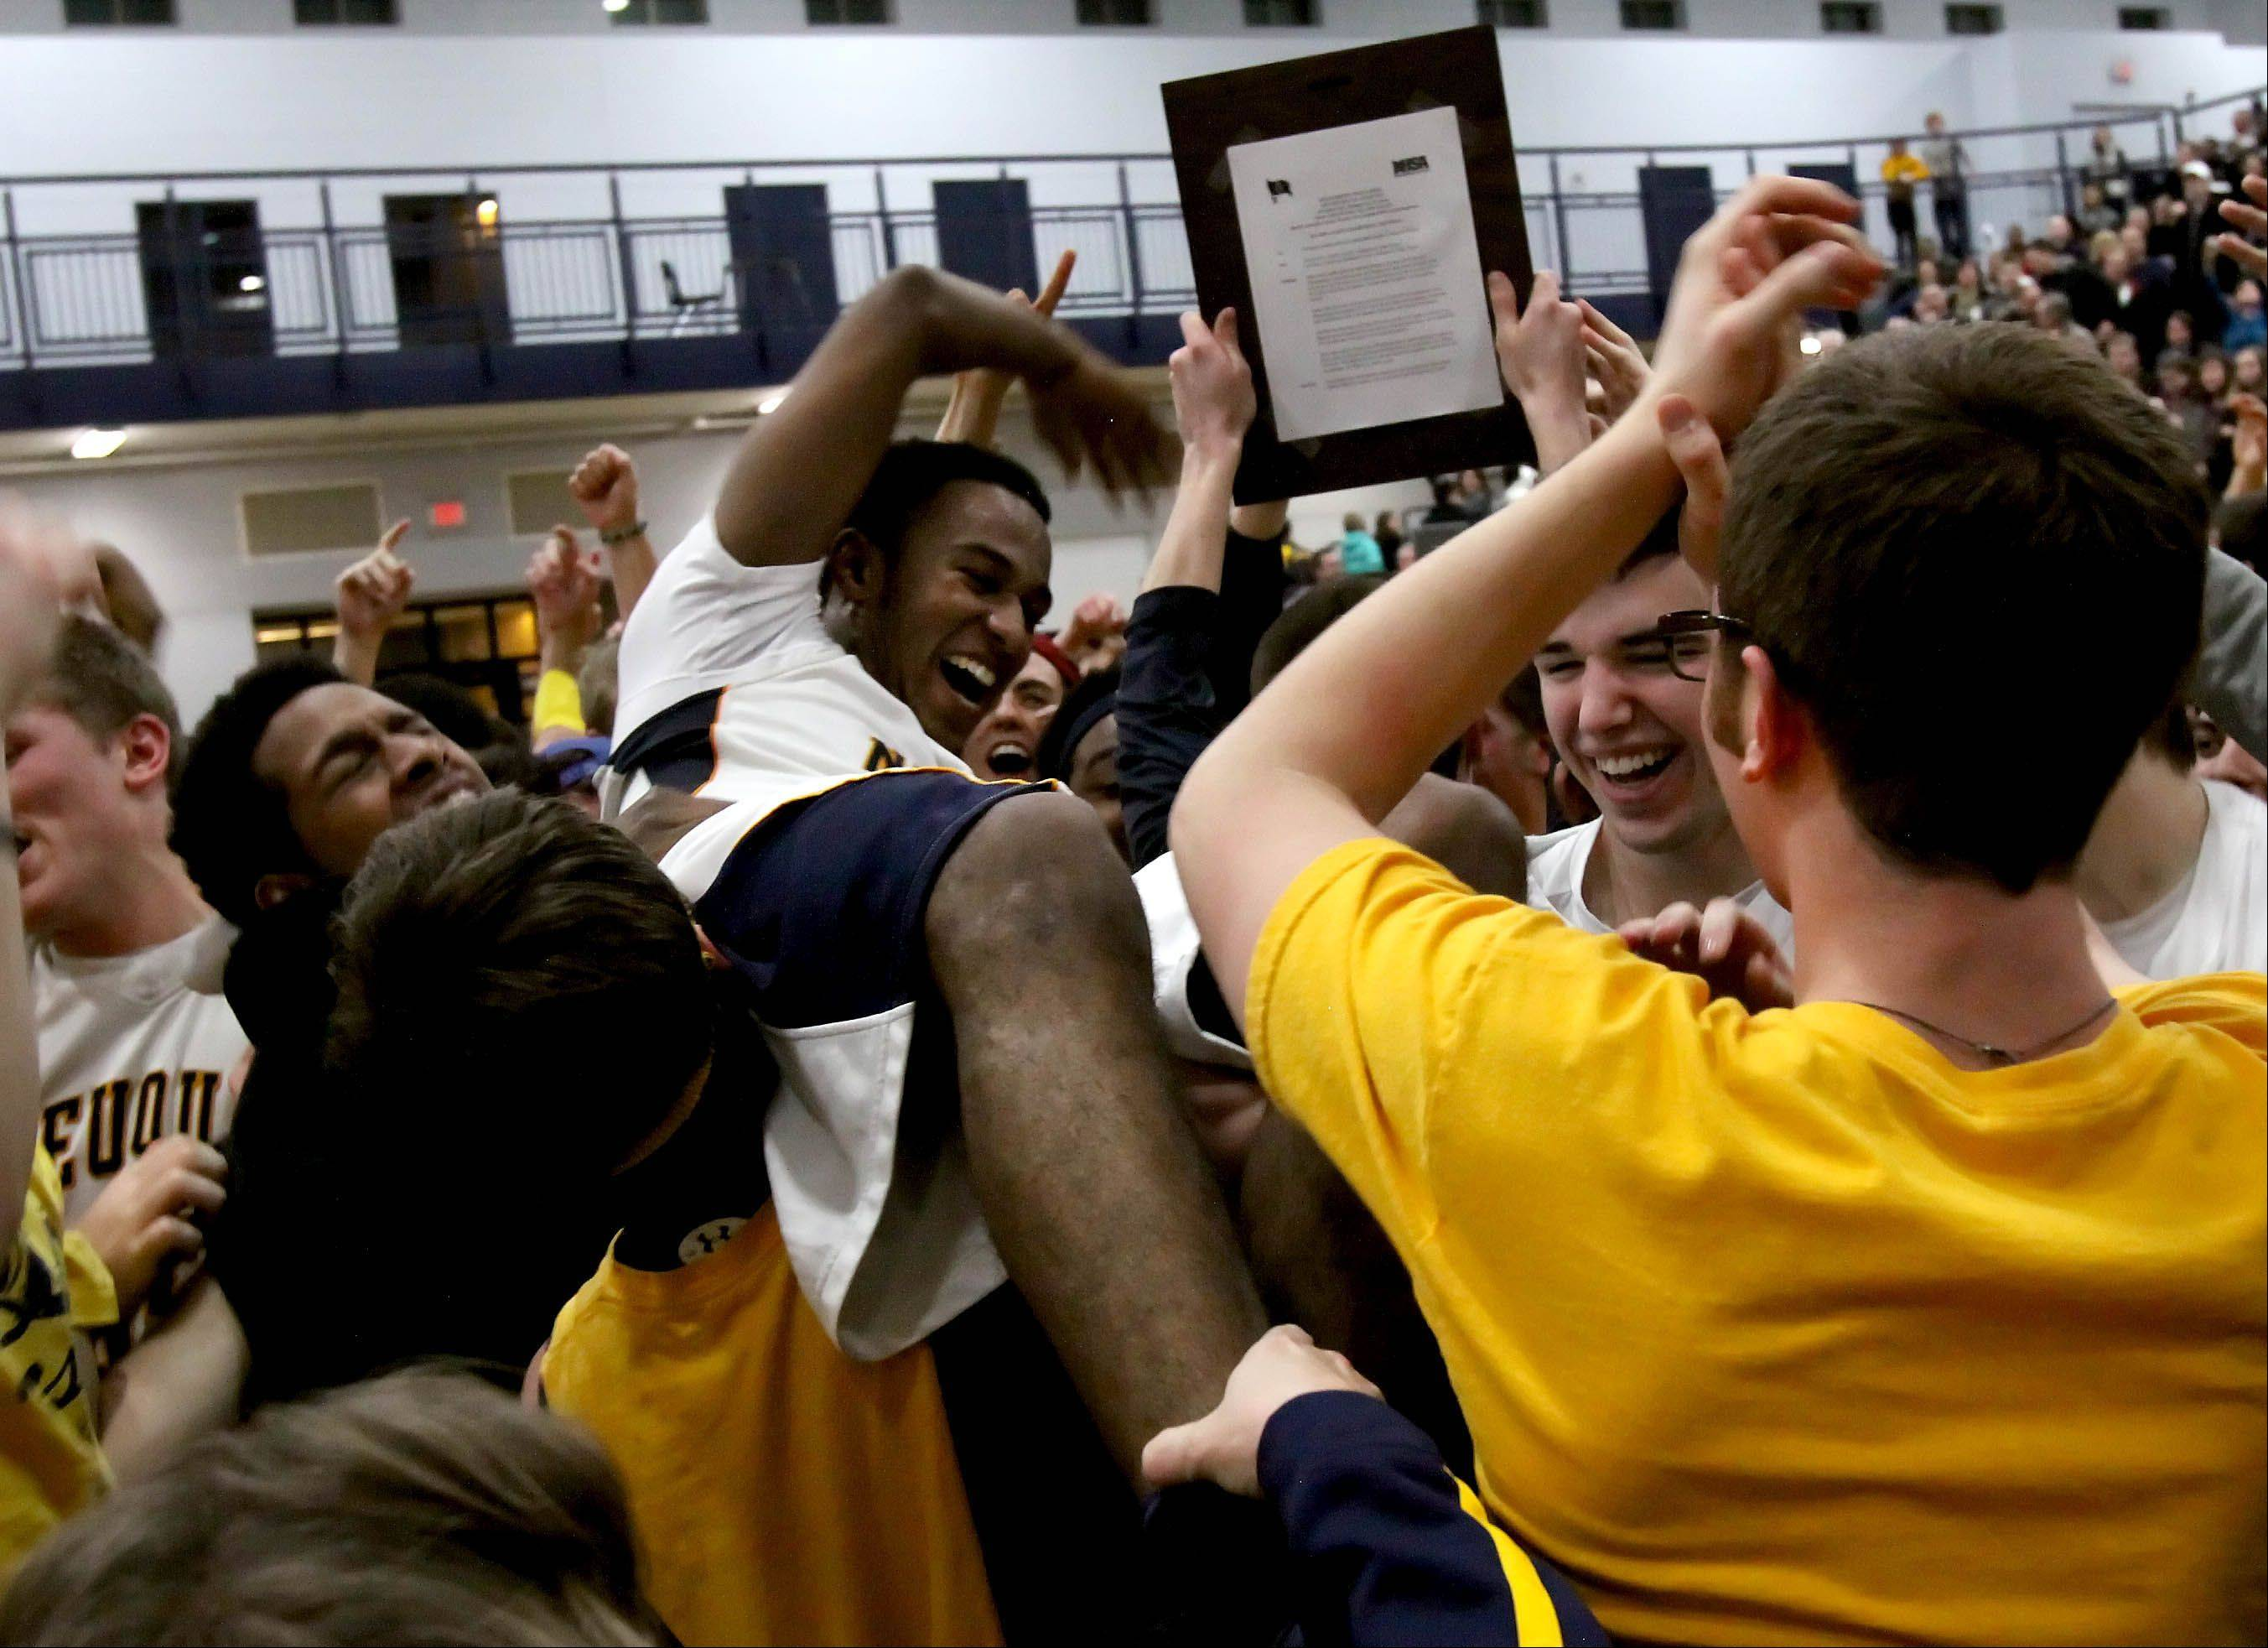 Jabari Sandifer of Neuqua Valley gets lifted up by the fans after they beat Waubonsie Valley 69-61 in Class 4A boys basketball regional finals at Oswego East on Friday.